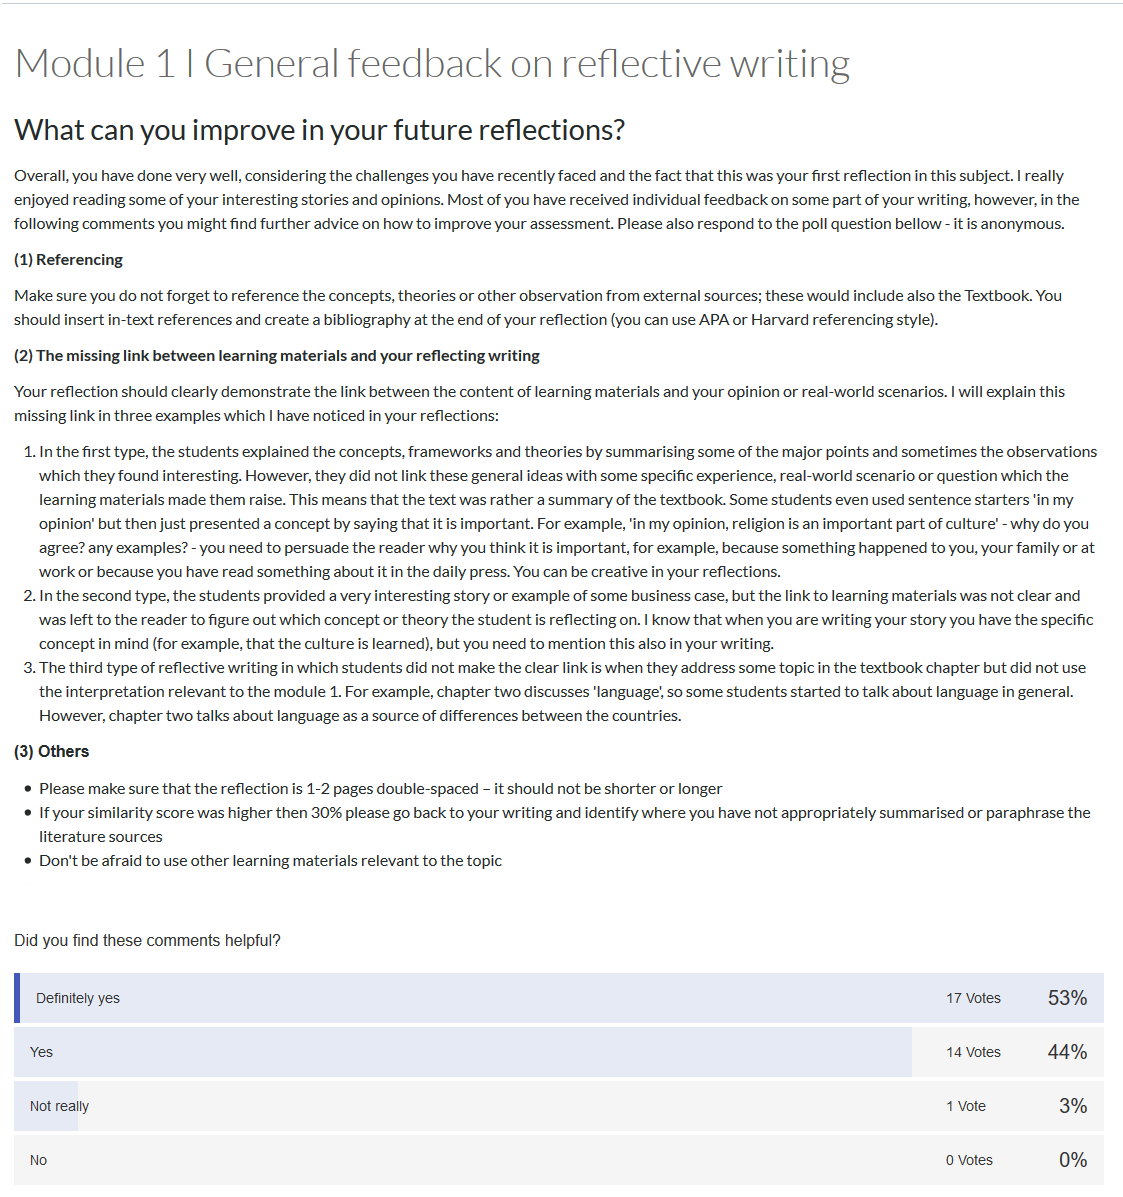 A Canvas page providing general feedback on reflective writing as well as a poll underneath to indicate whether or not this information was helpful for the students.